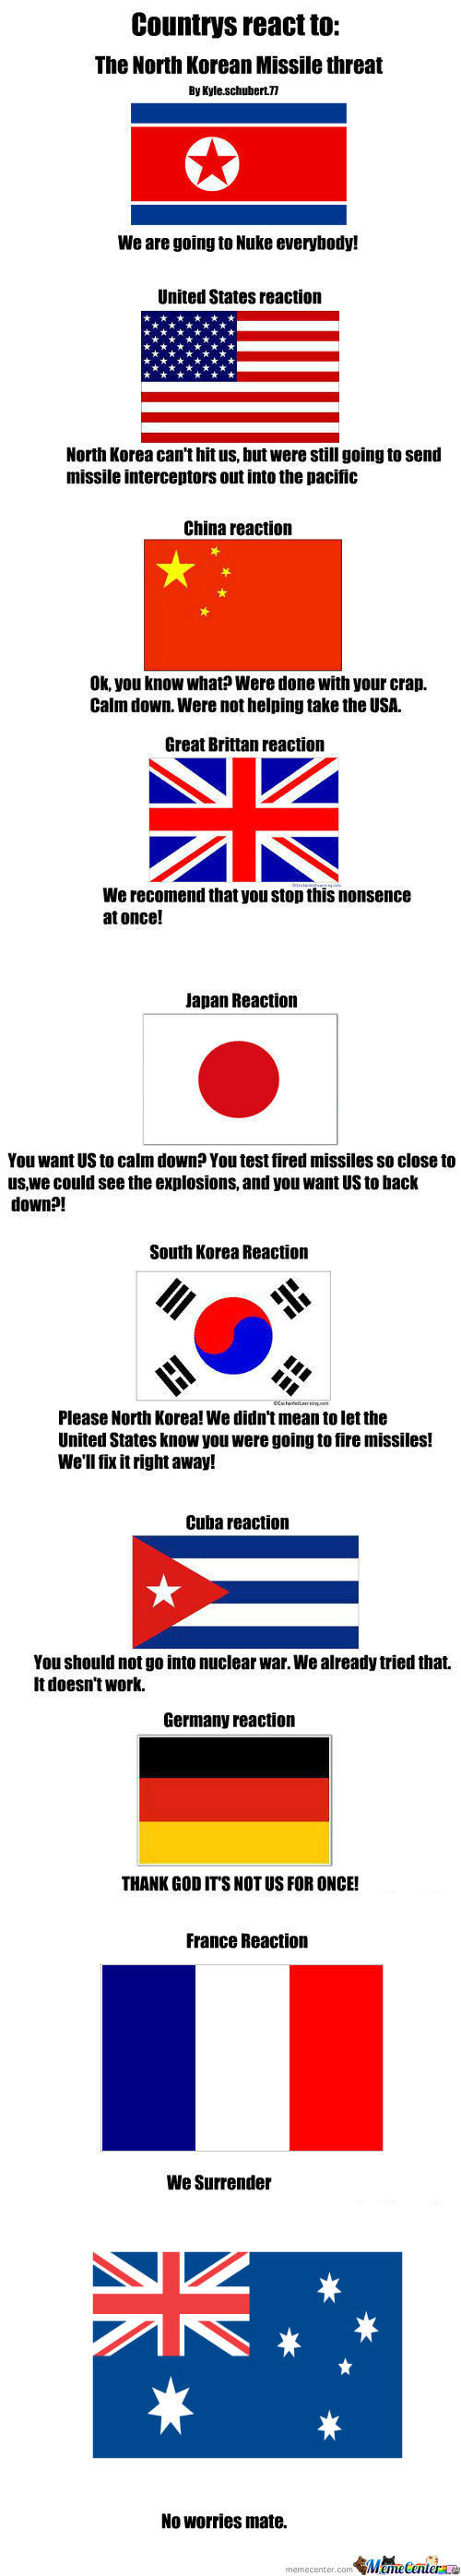 [RMX] [RMX] Country's React To: The North Korean Missile Threat